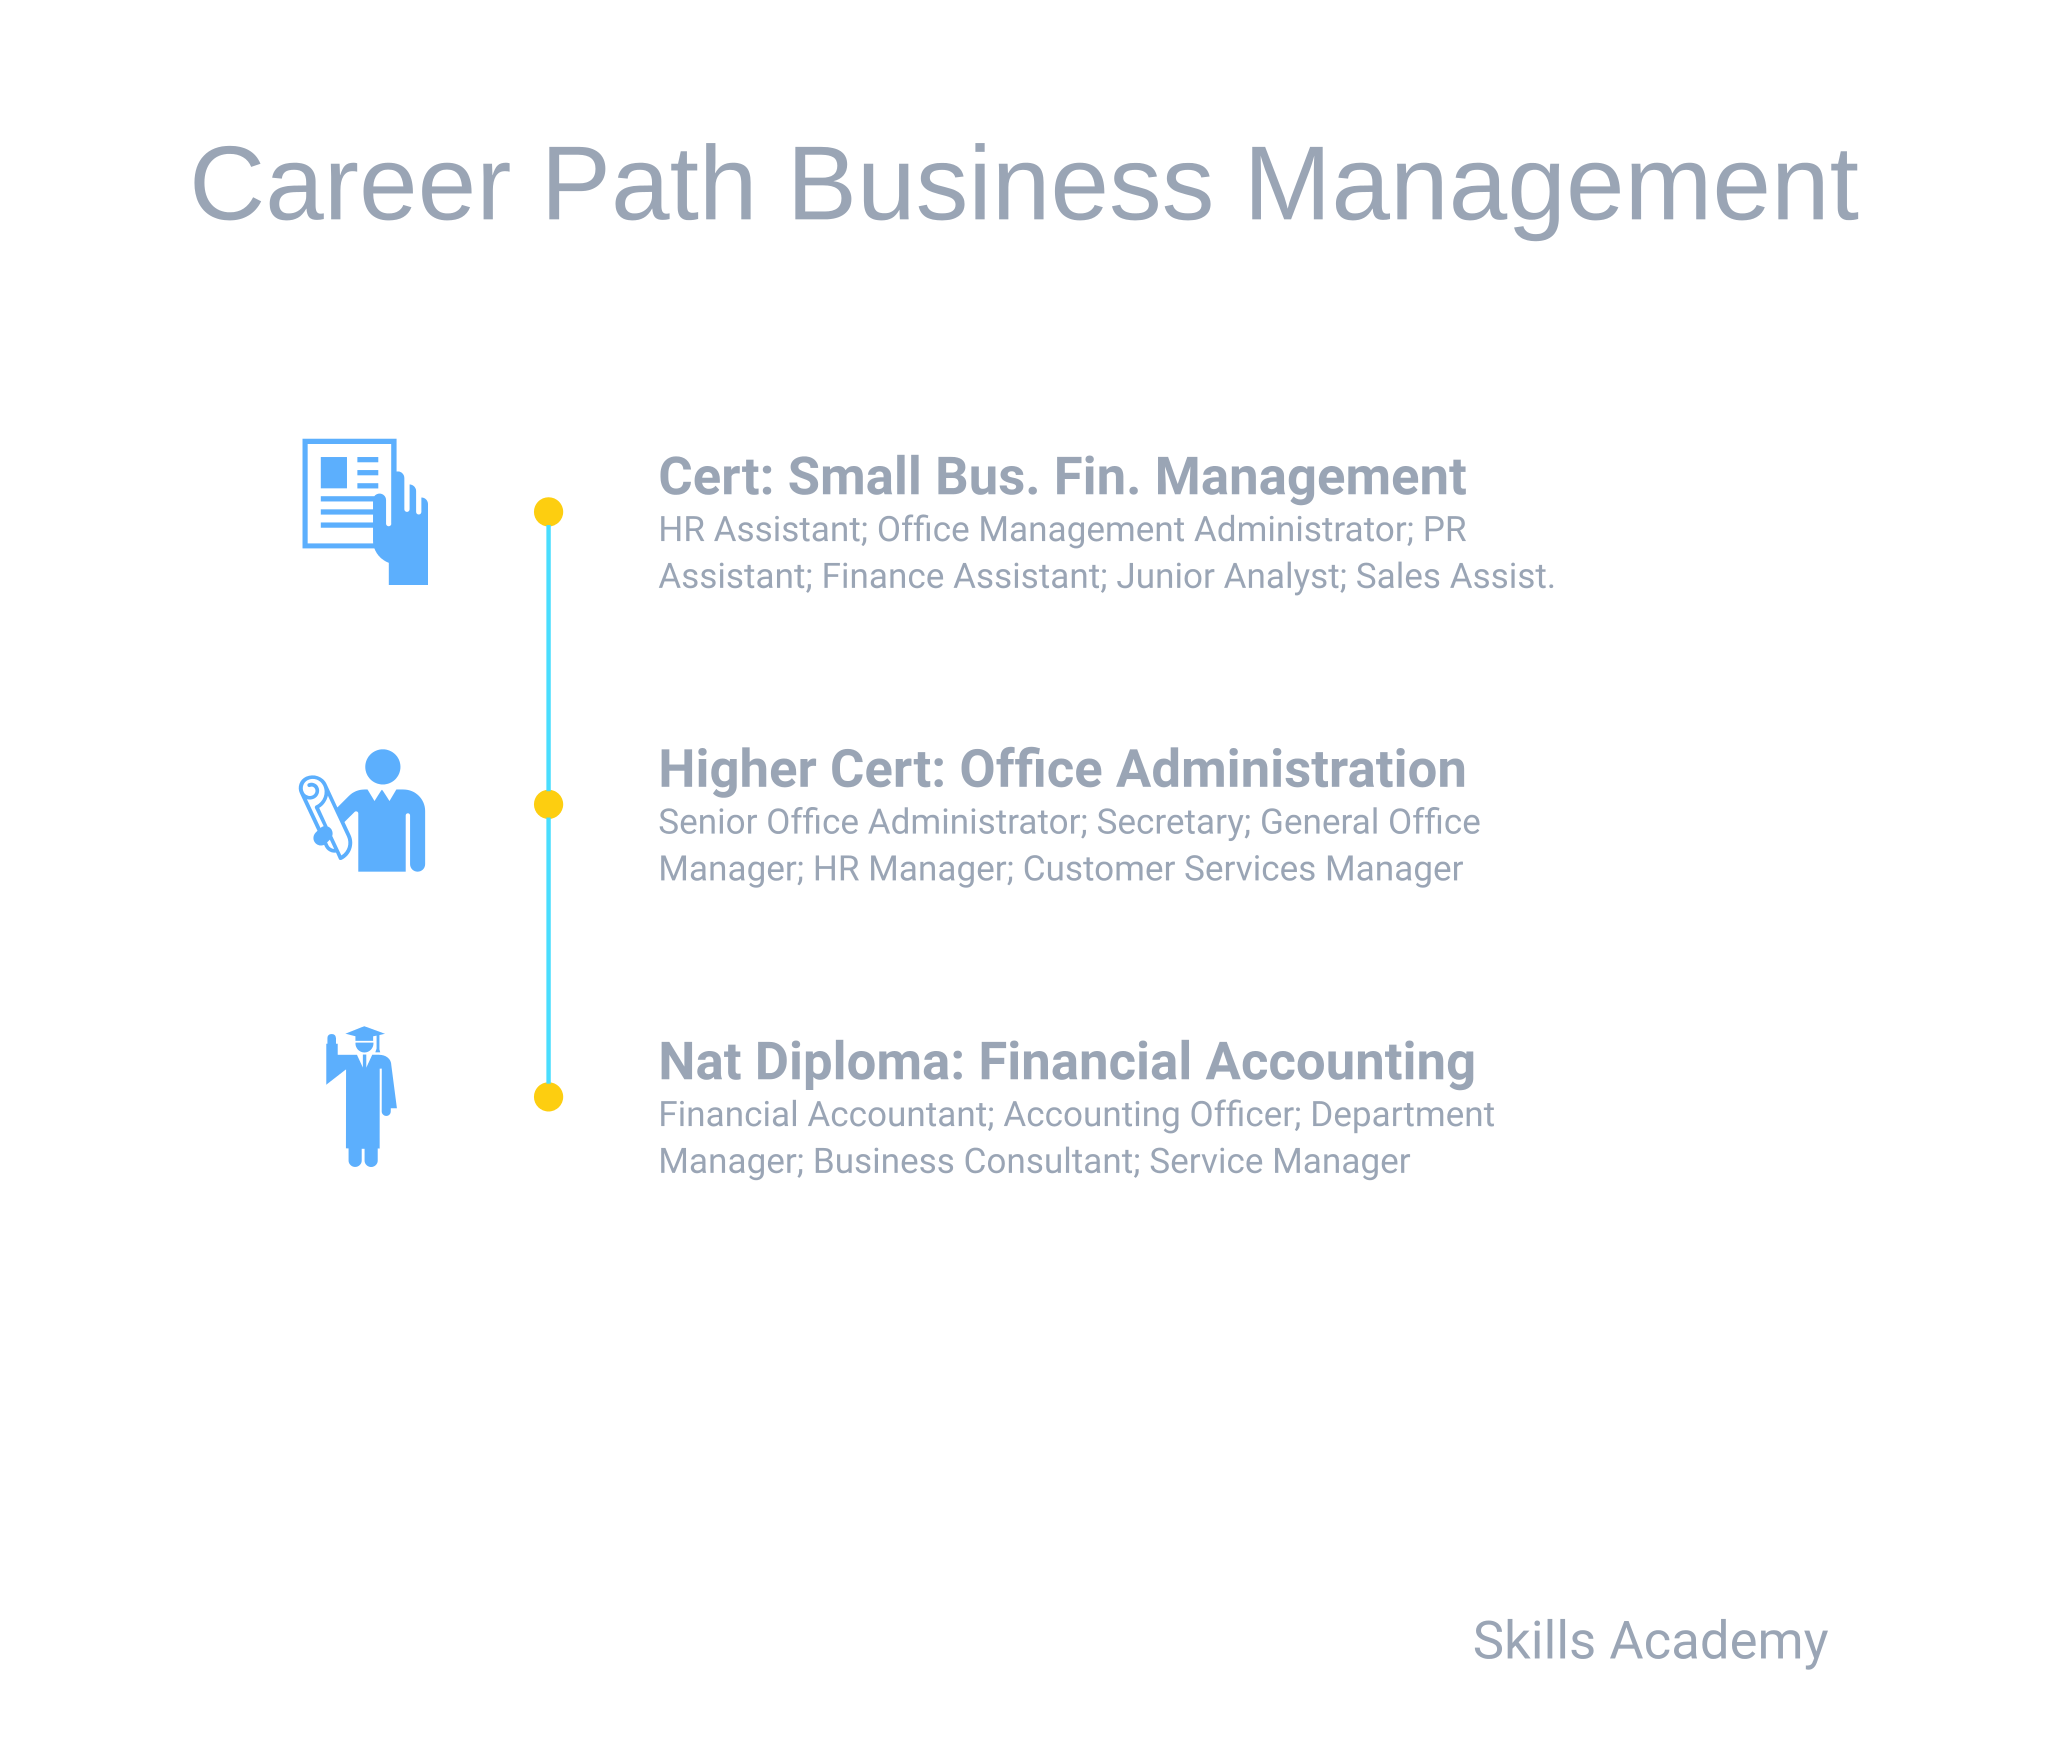 Career Path Business Management